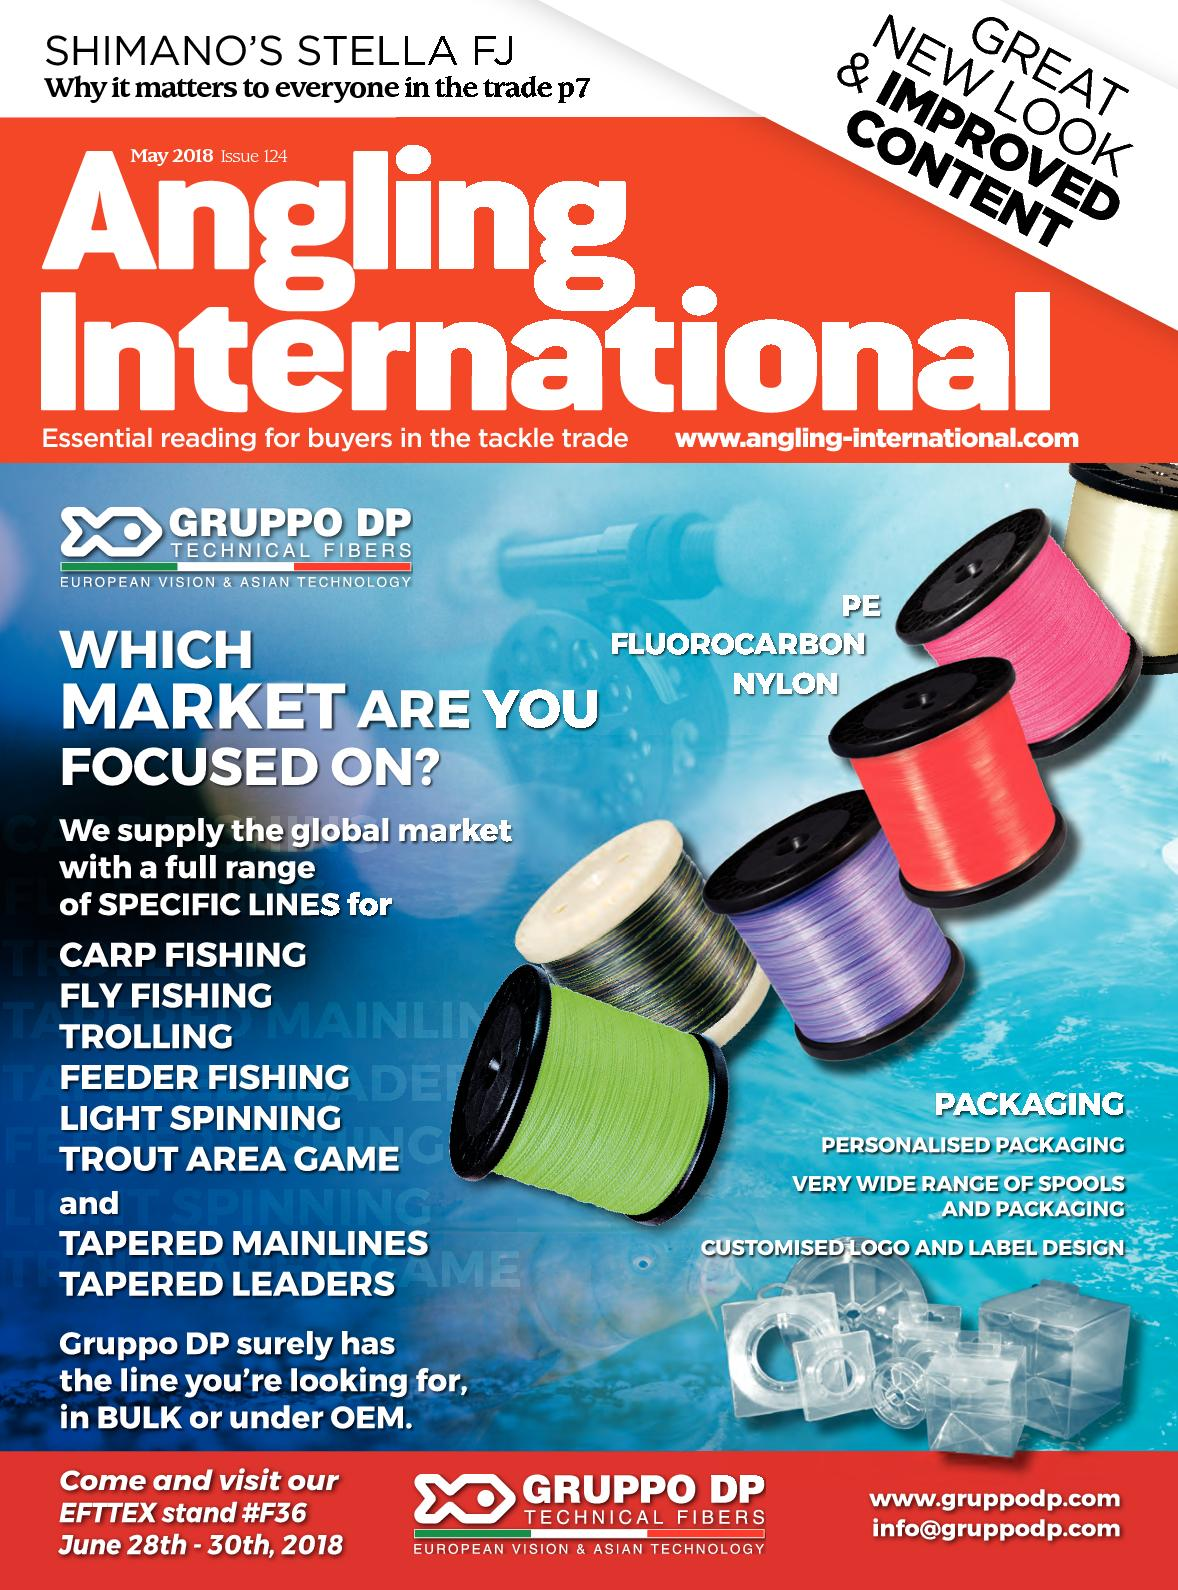 a1d89a55dcb0 Calaméo - Angling International - May 2018 - issue 124